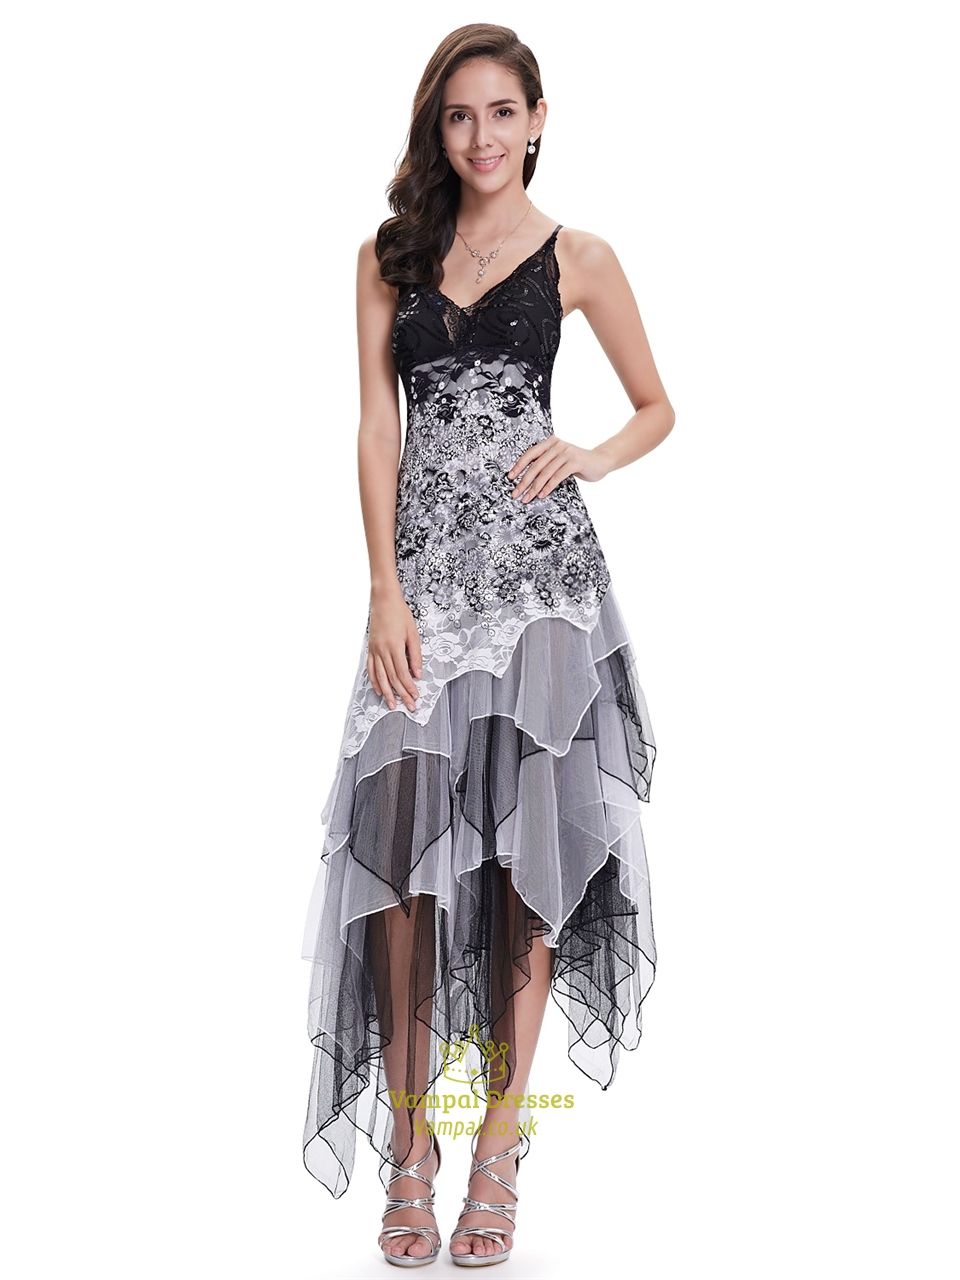 Black And White Lace Spaghetti Strap Prom Dress With